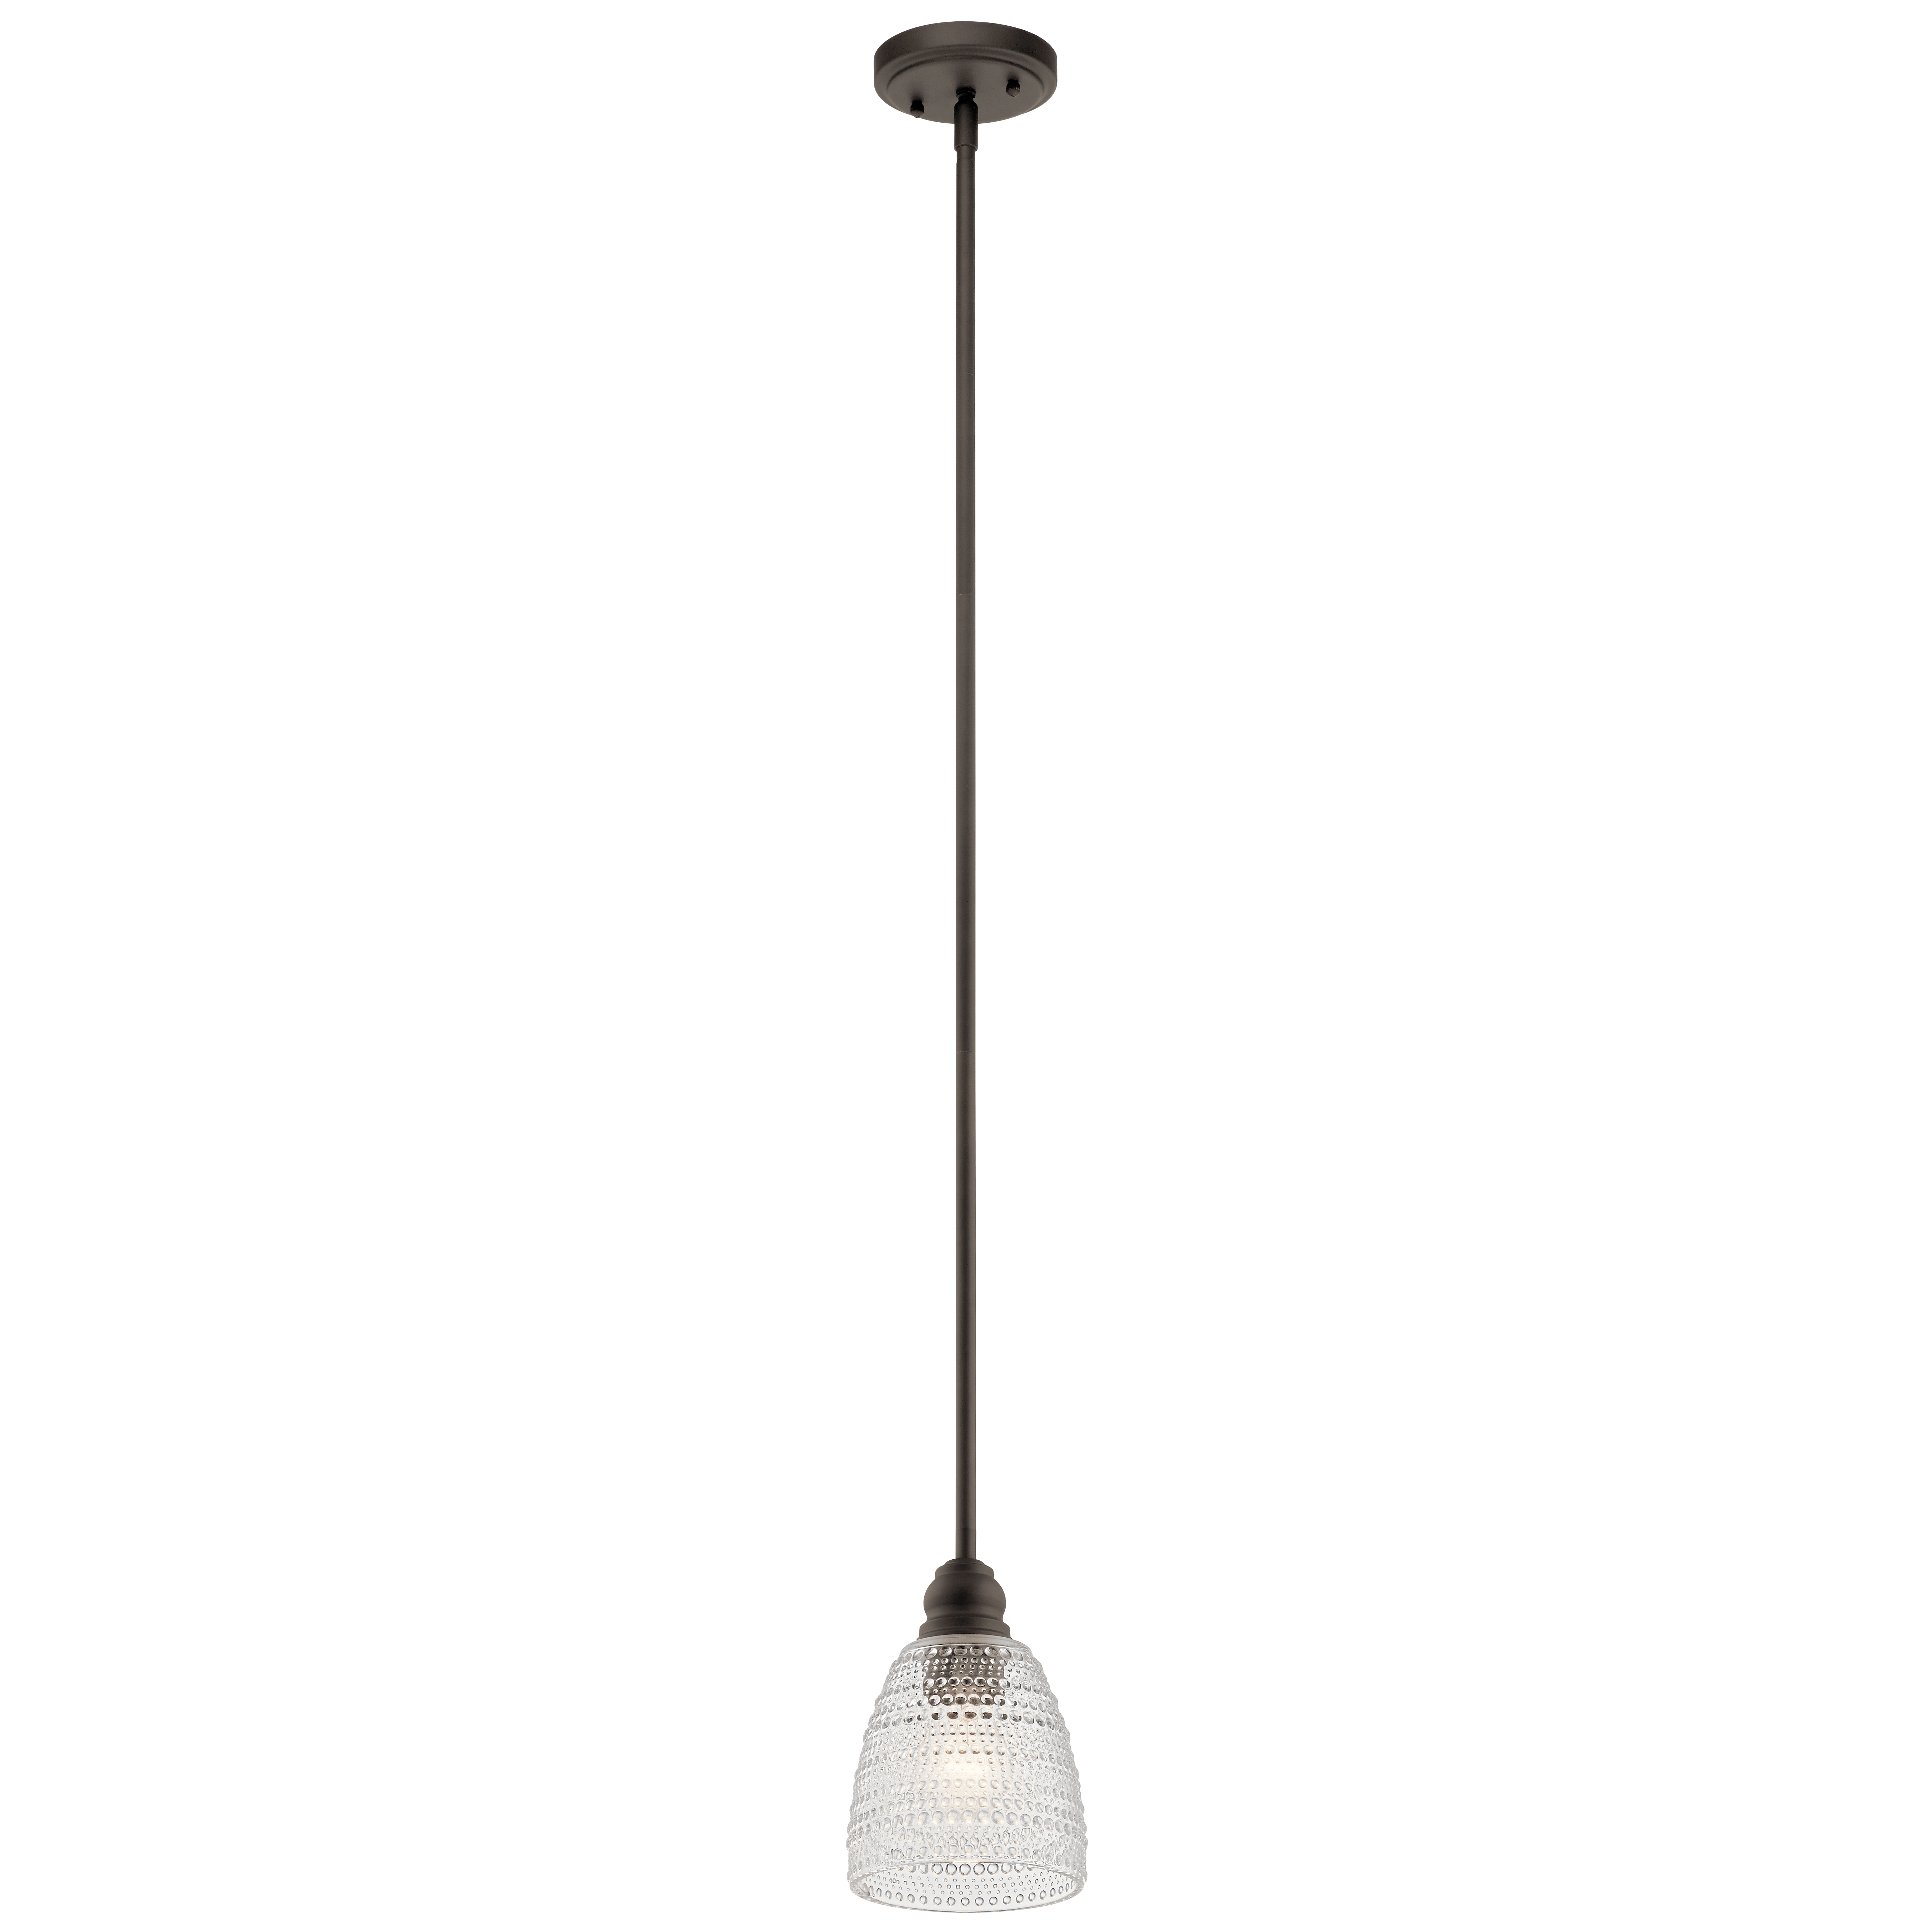 Kichler Karmarie pendant bathroom lighting